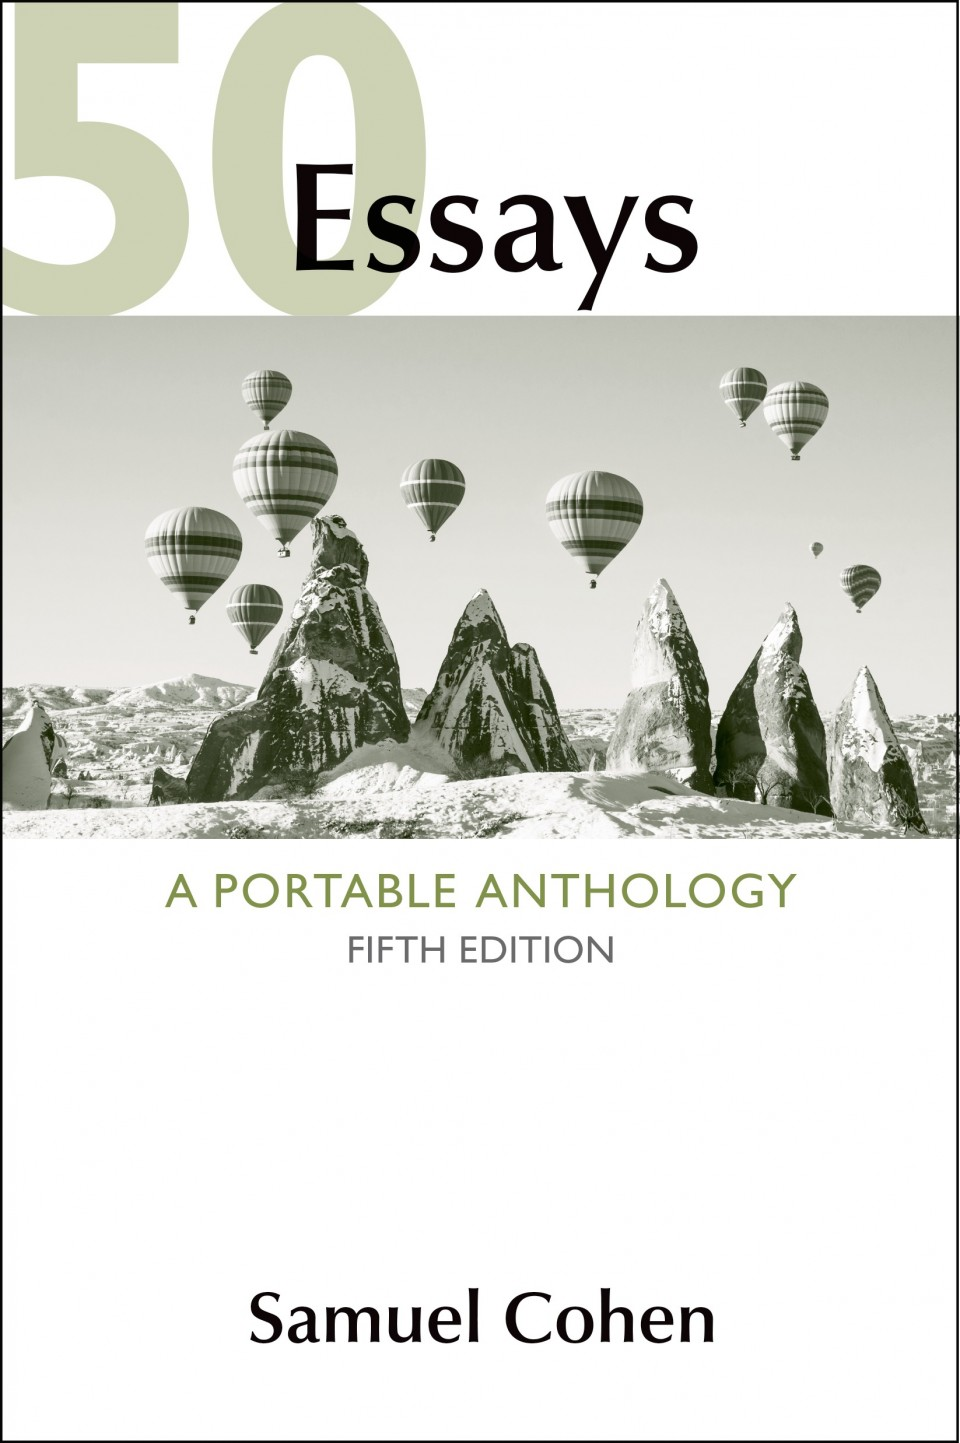 008 Essays Table Of Contents Essay Example Best 50 Great A Portable Anthology 4th Edition 960